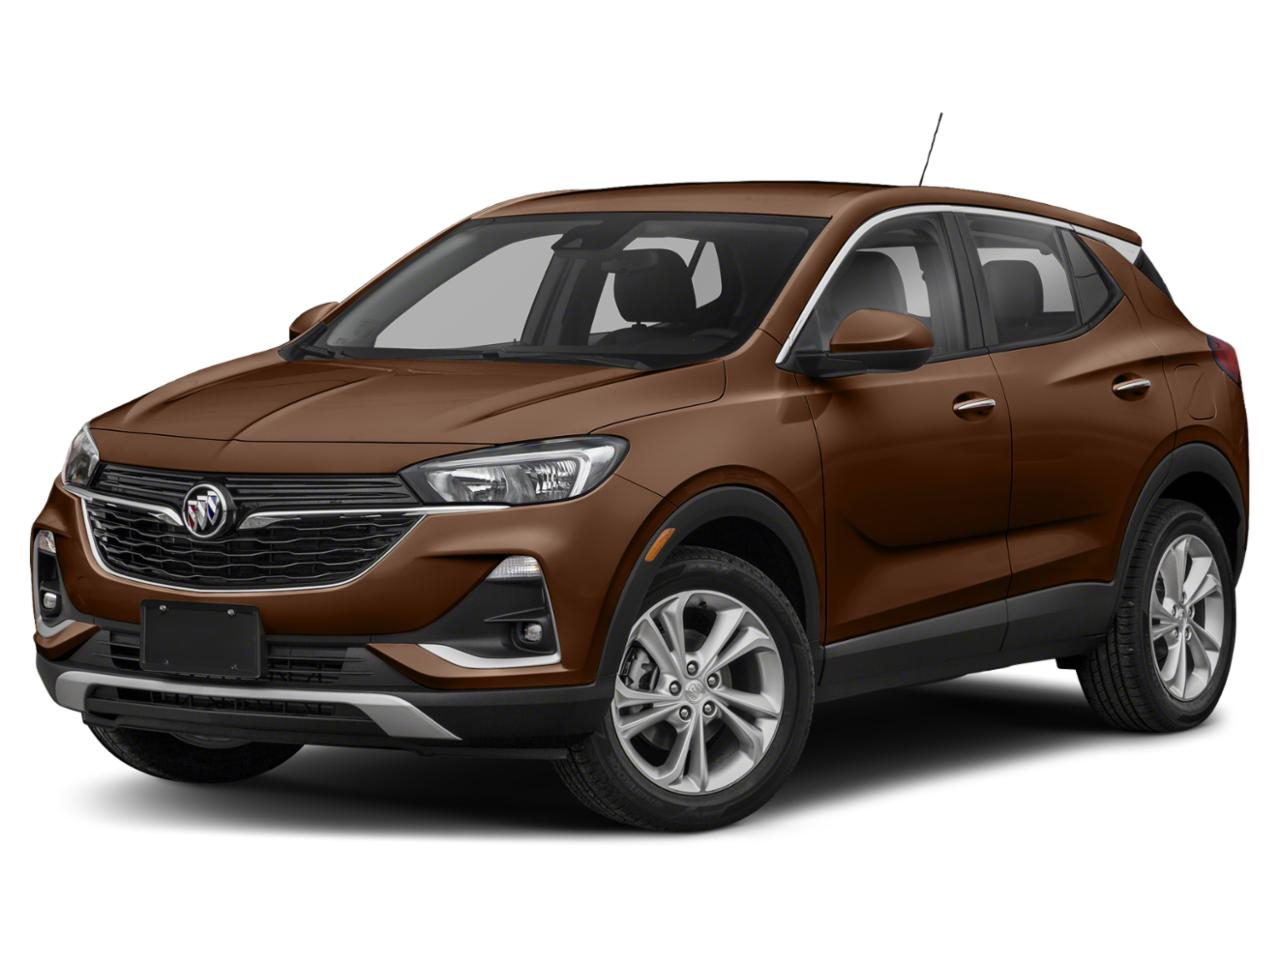 New 2020 Buick Encore Gx For Sale At Griffin Buick Gmc 2022 Buick Encore Oil Capacity, Owner's Manual, Color Options